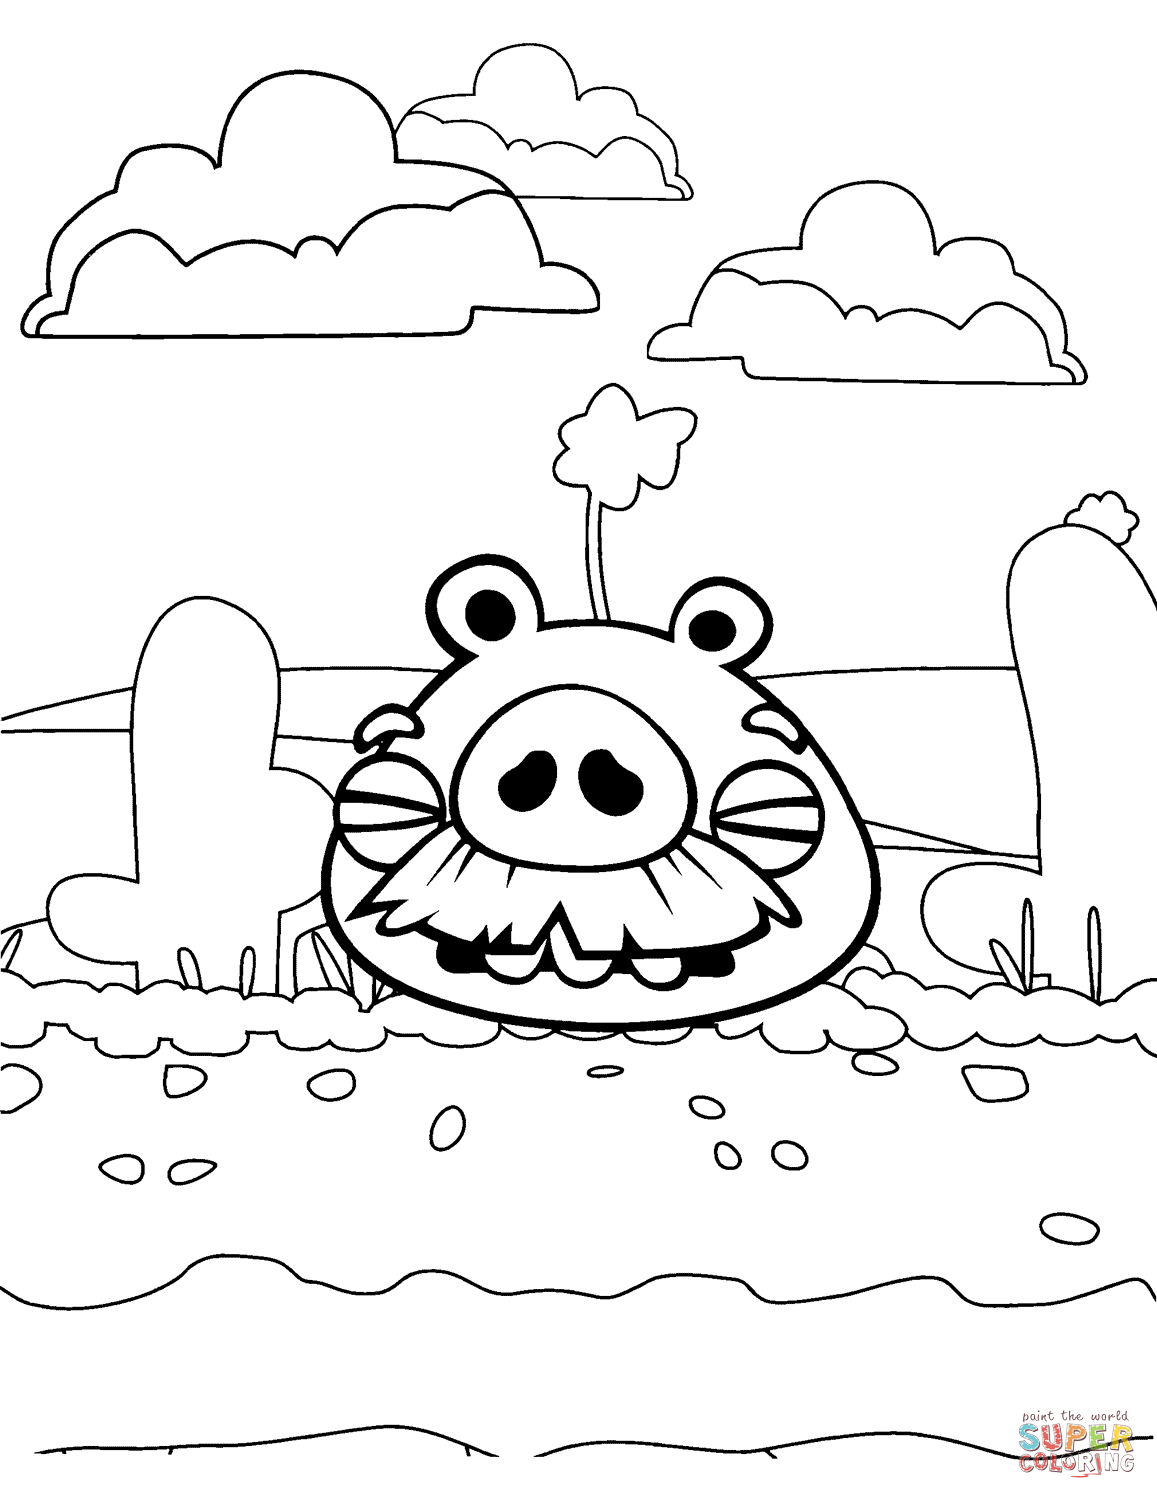 Bad Piggies Coloring Pages Online Bad Piggies Is A Puzzle Video Game Developed By Rovio Ente In 2020 Coloring Pages Bird Coloring Pages Free Printable Coloring Pages